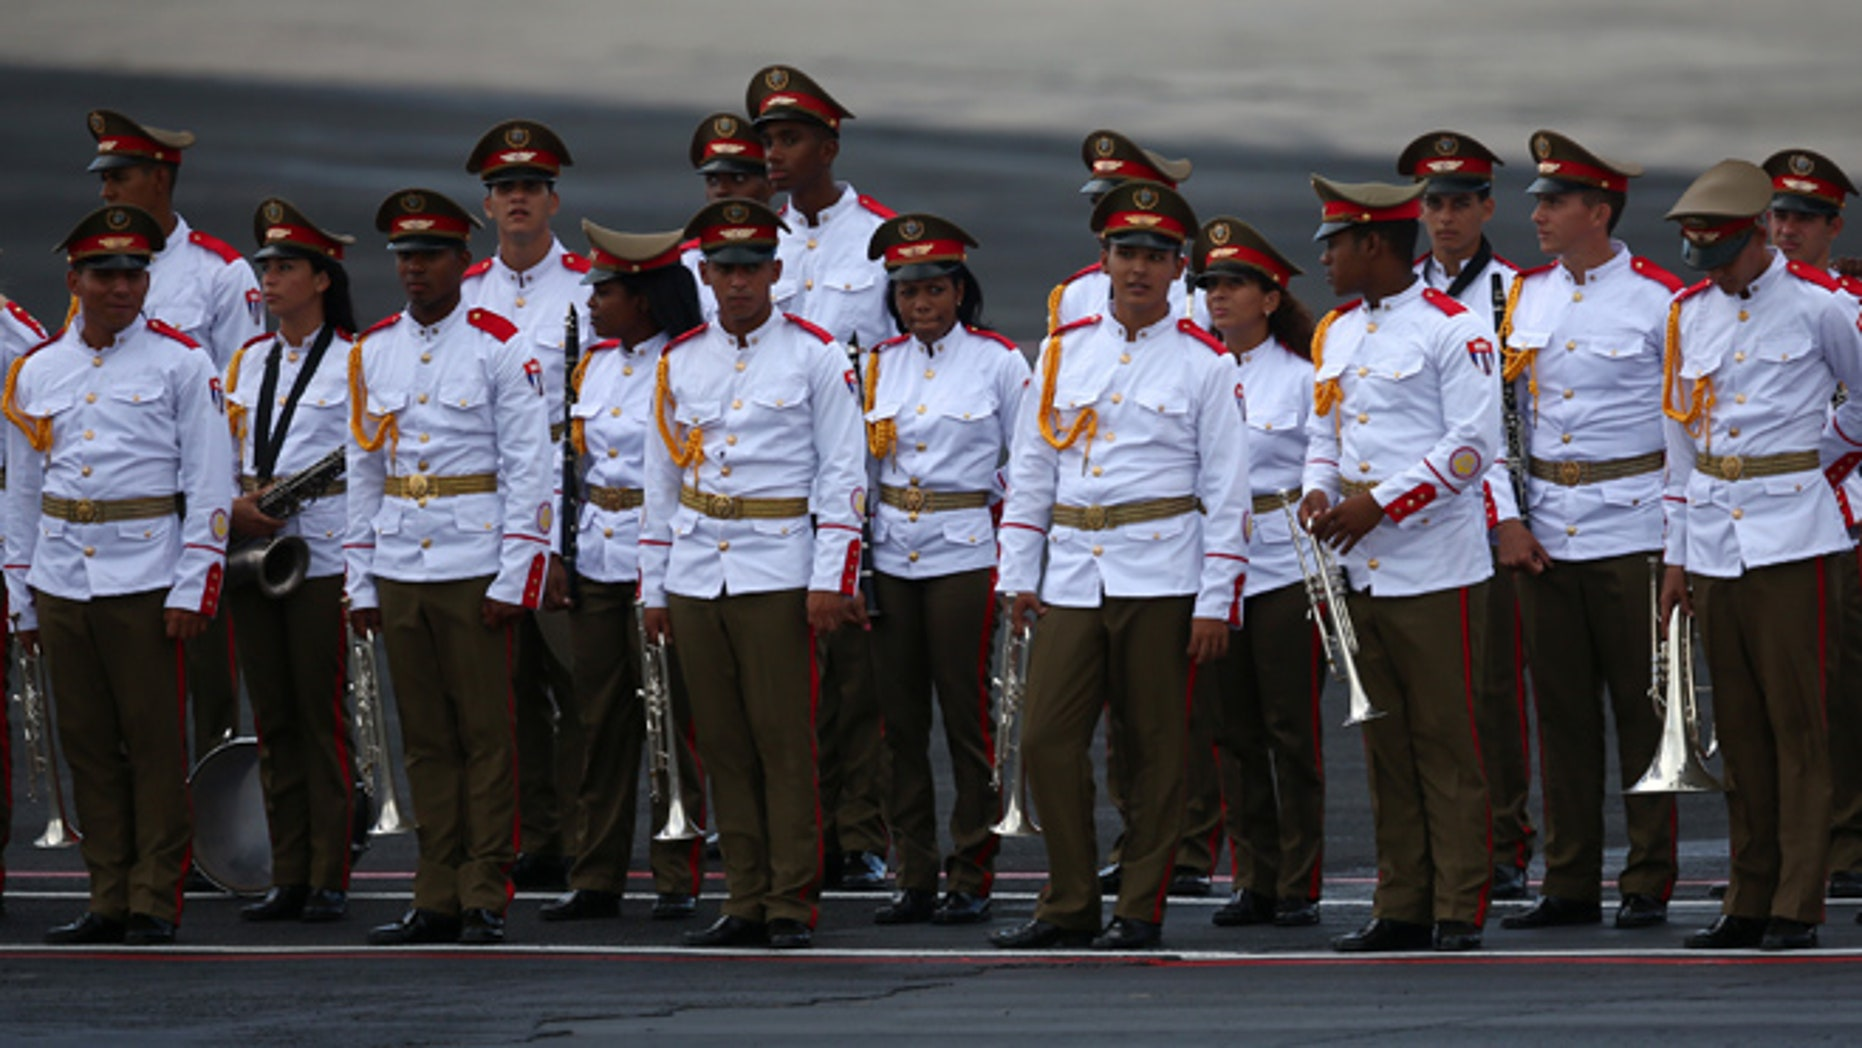 HAVANA, CUBA - SEPTEMBER 19: Cuban military personnel await the arrival of Pope Francis at Jose Marti International Airport on September 19, 2015 in Havana, Cuba. Pope Francis is at the beginning of a three day visit to Cuba where he will meet President Raul Castro and hold Mass in Revolution Square before travelling to Holguin, Santiago de Cuba and El Cobre then onwards to the United States.  (Photo by Carl Court/Getty Images)